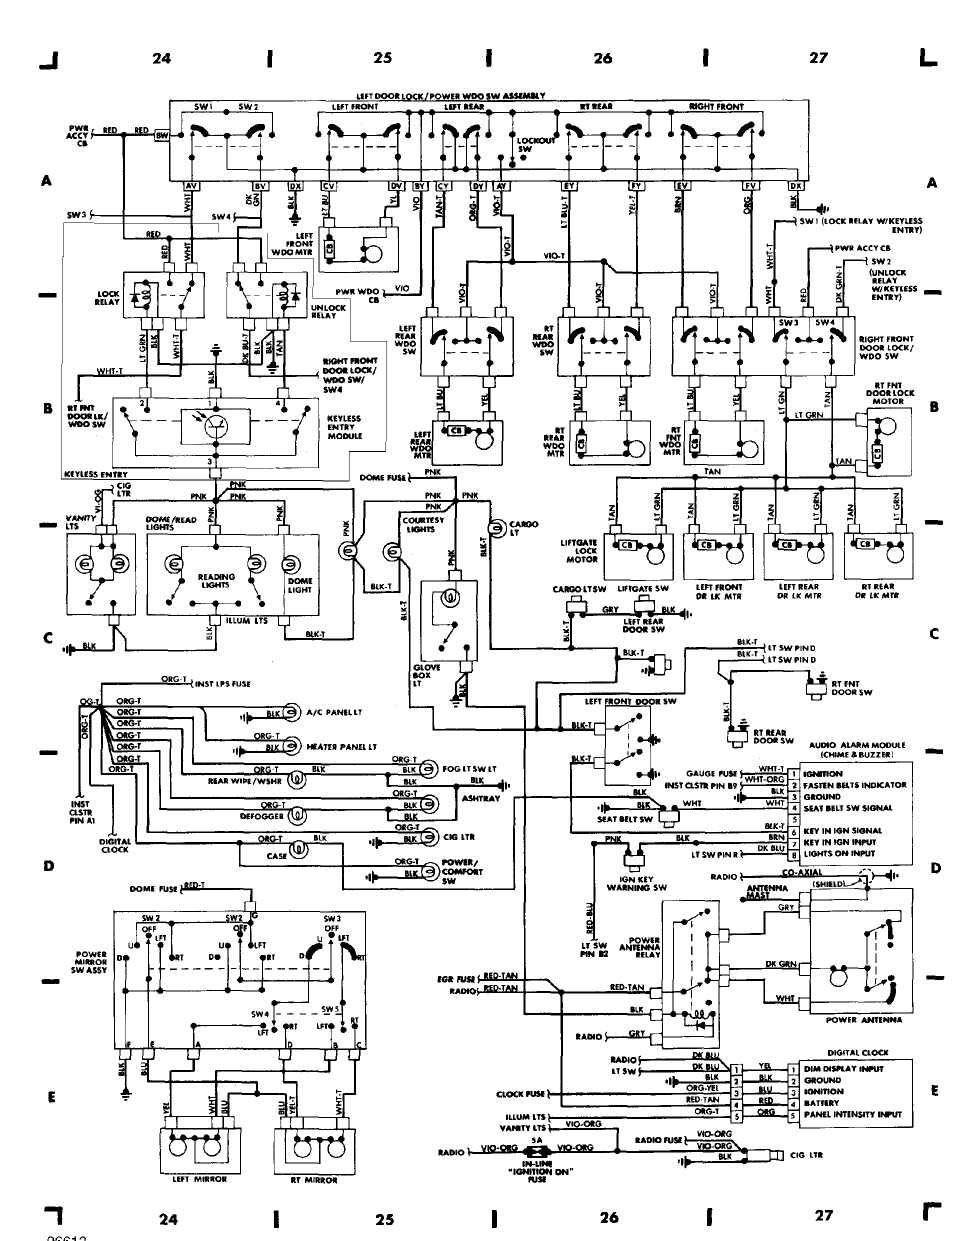 wiring_diagrams_html_61f5e0ad wiring diagrams 1984 1991 jeep cherokee (xj) jeep 1996 jeep cherokee under hood fuse box diagram at gsmx.co